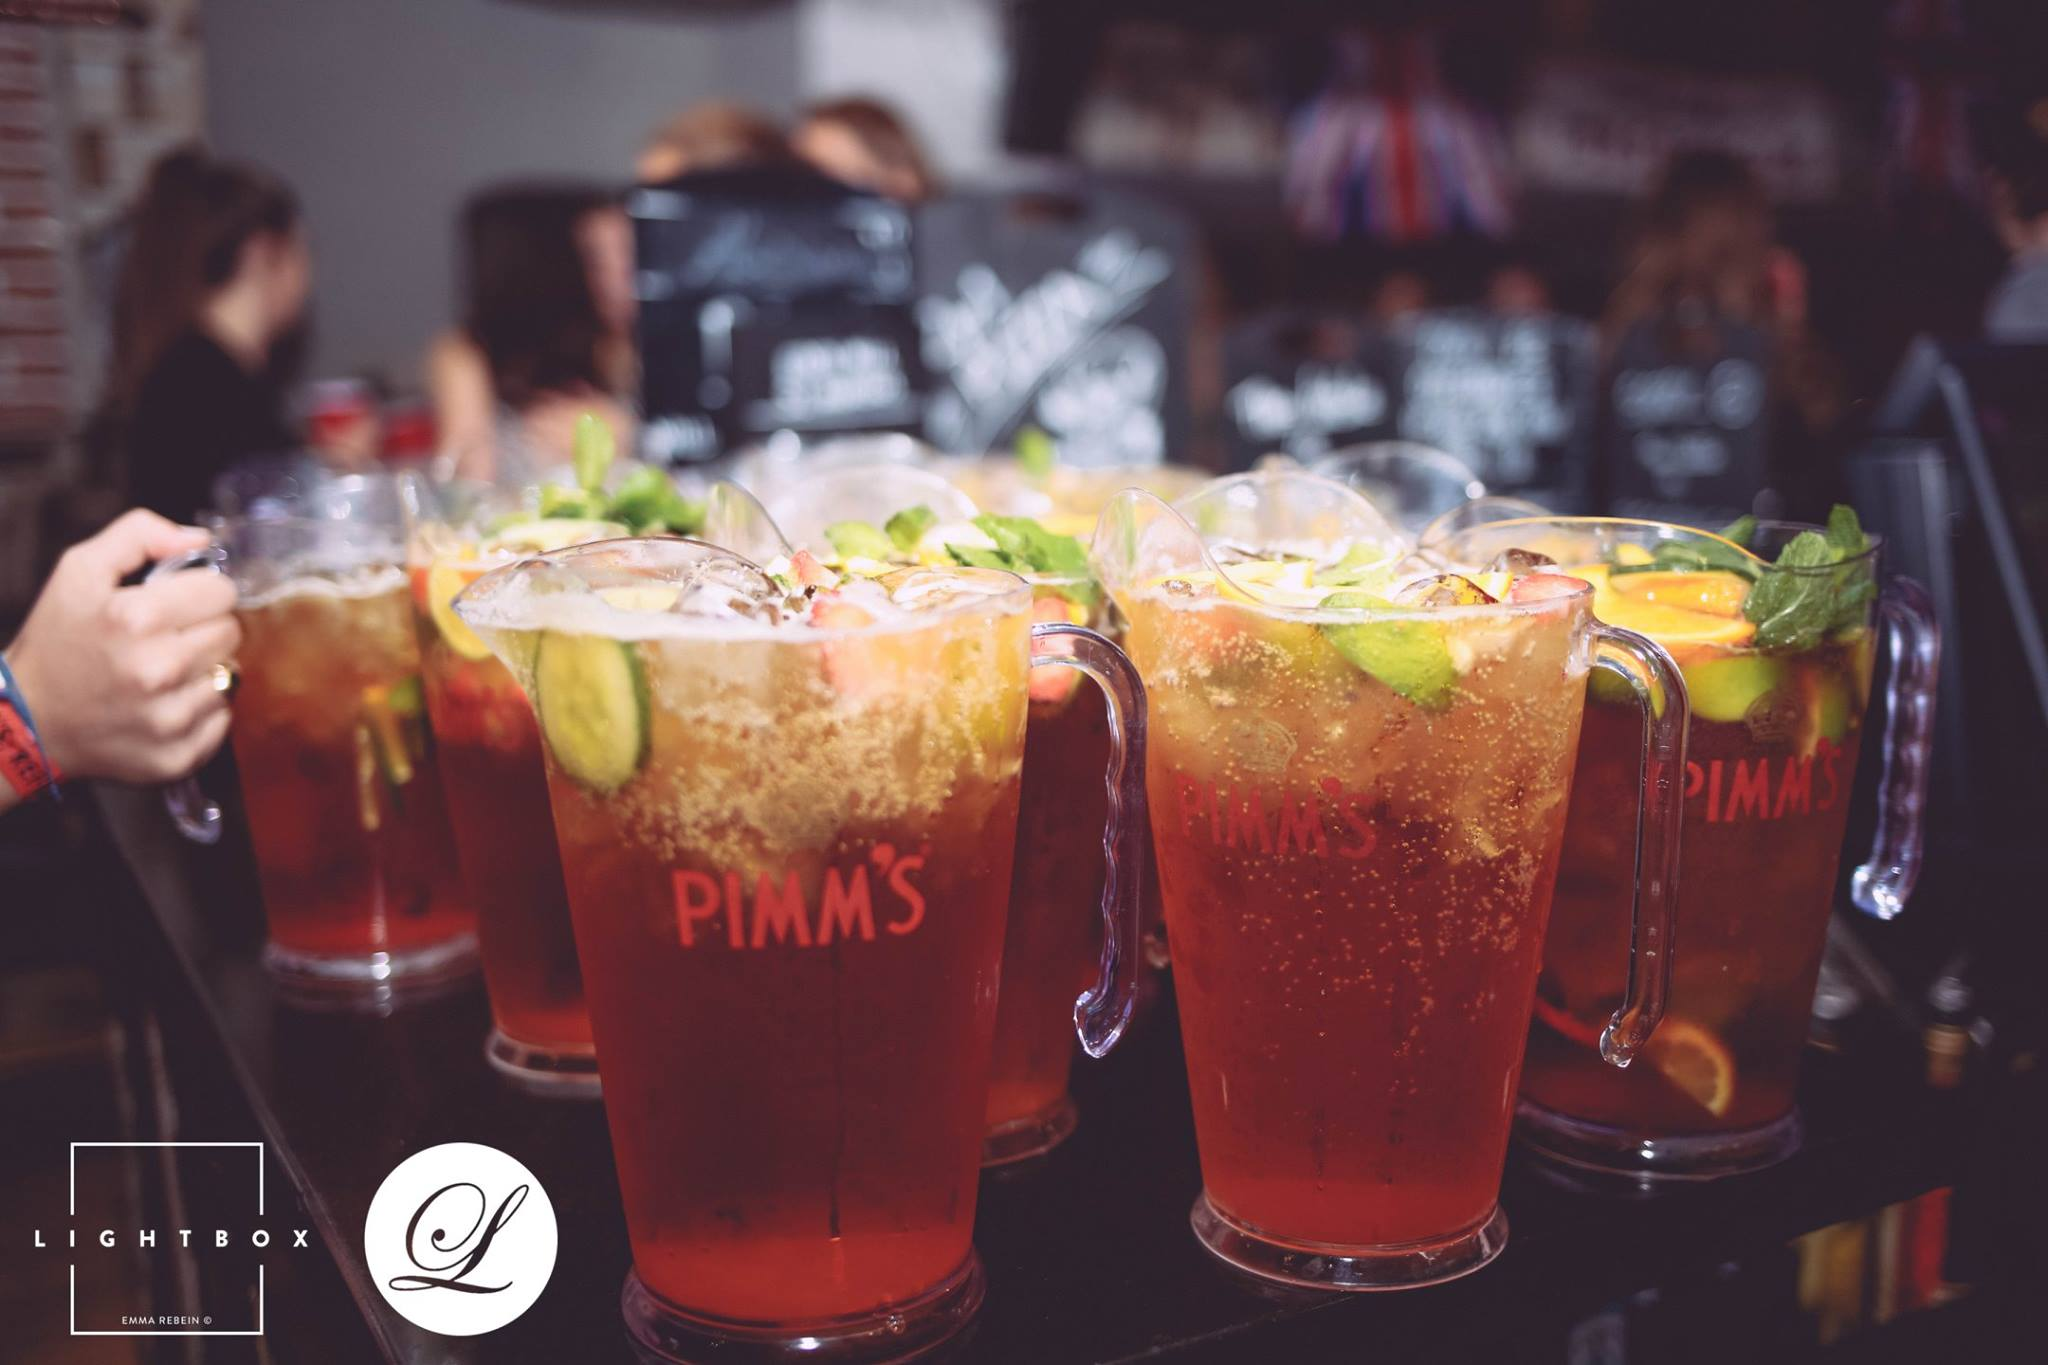 Lumsden Set to End the Summer With Plenty of Pimms